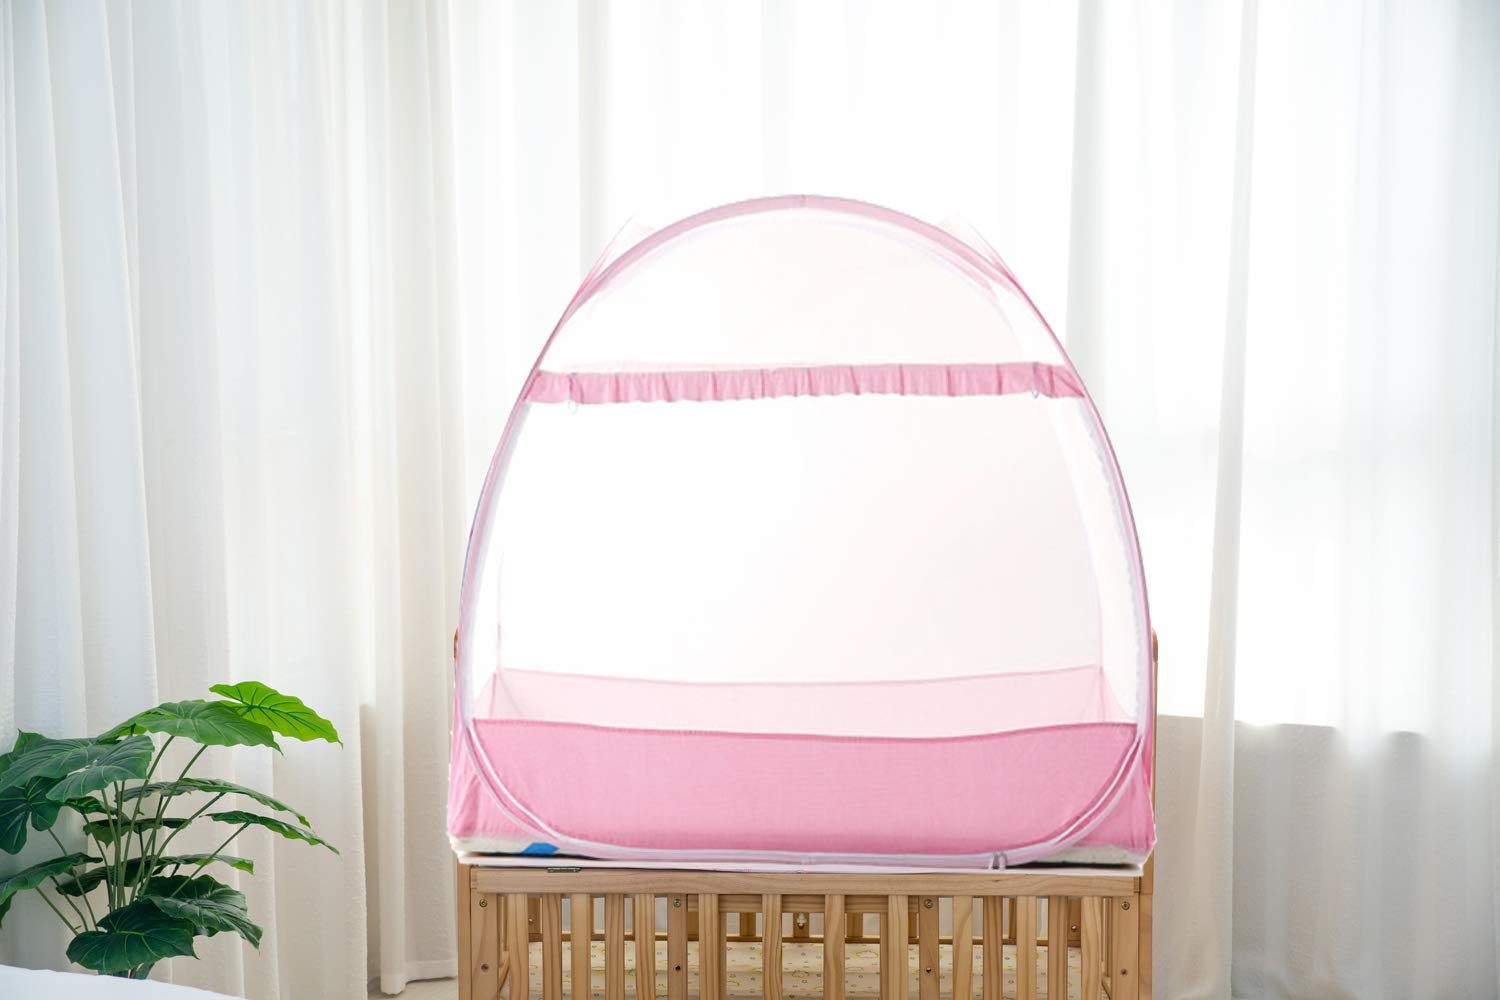 Baby Crib Safety Tent, Pop up Mosquito Net Crib Canopy Cover to Keep Baby from Climbing Out and Keep Insects Out by AMORBASE (Pink, 47''L x 26''W x 39''H)